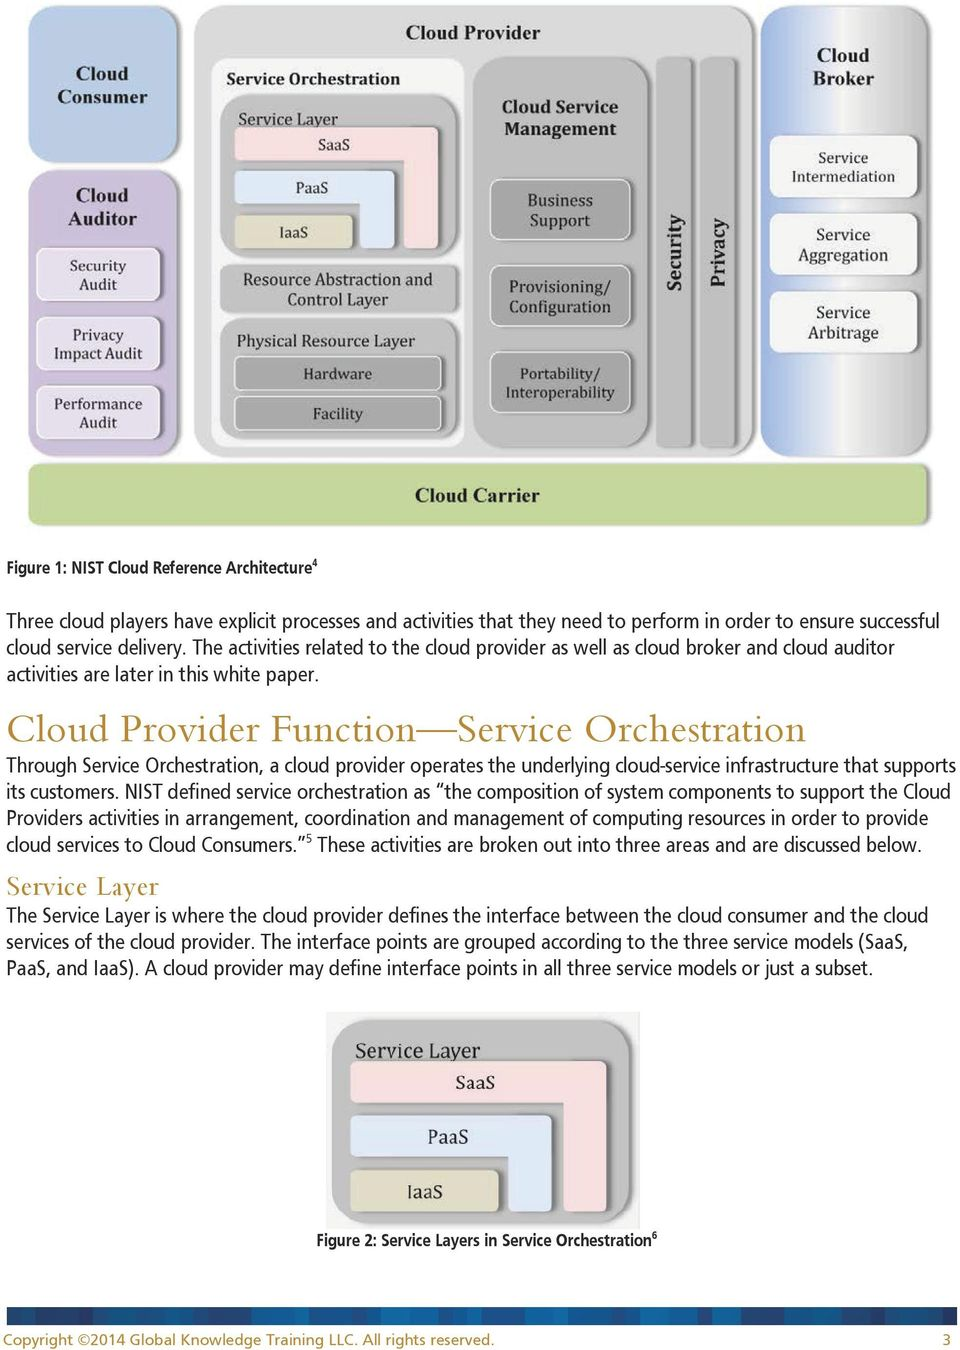 Cloud Provider Function Service Orchestration Through Service Orchestration, a cloud provider operates the underlying cloud-service infrastructure that supports its customers.